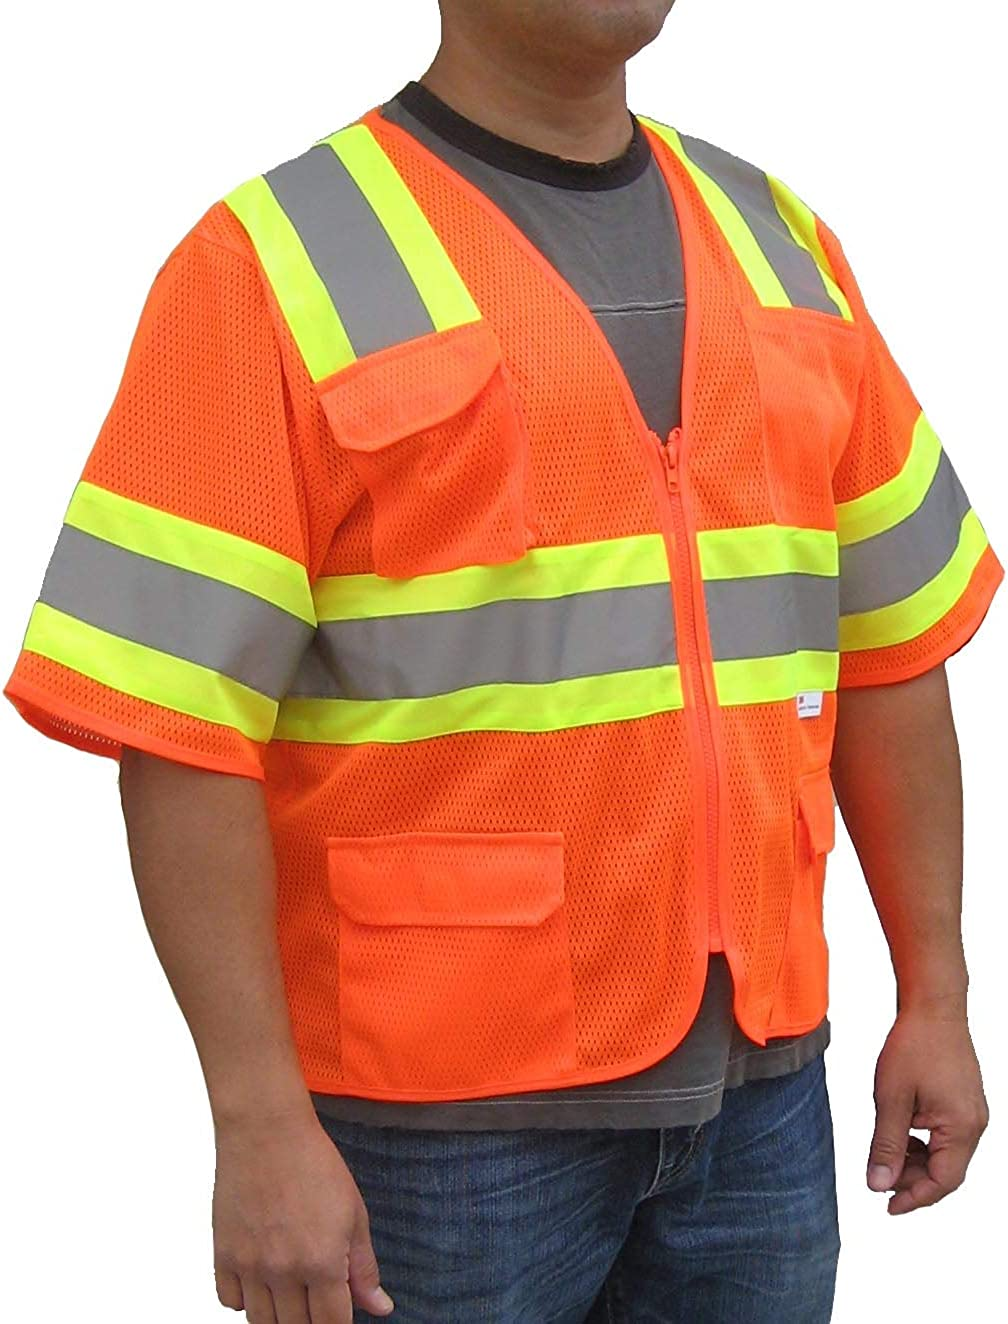 3C Products SV5400, ANSI/ISEA Class 3, High Vis Mesh Safety Vest, 3M Reflective w/Yellow Binding, 7 Pockets, Neon Orange